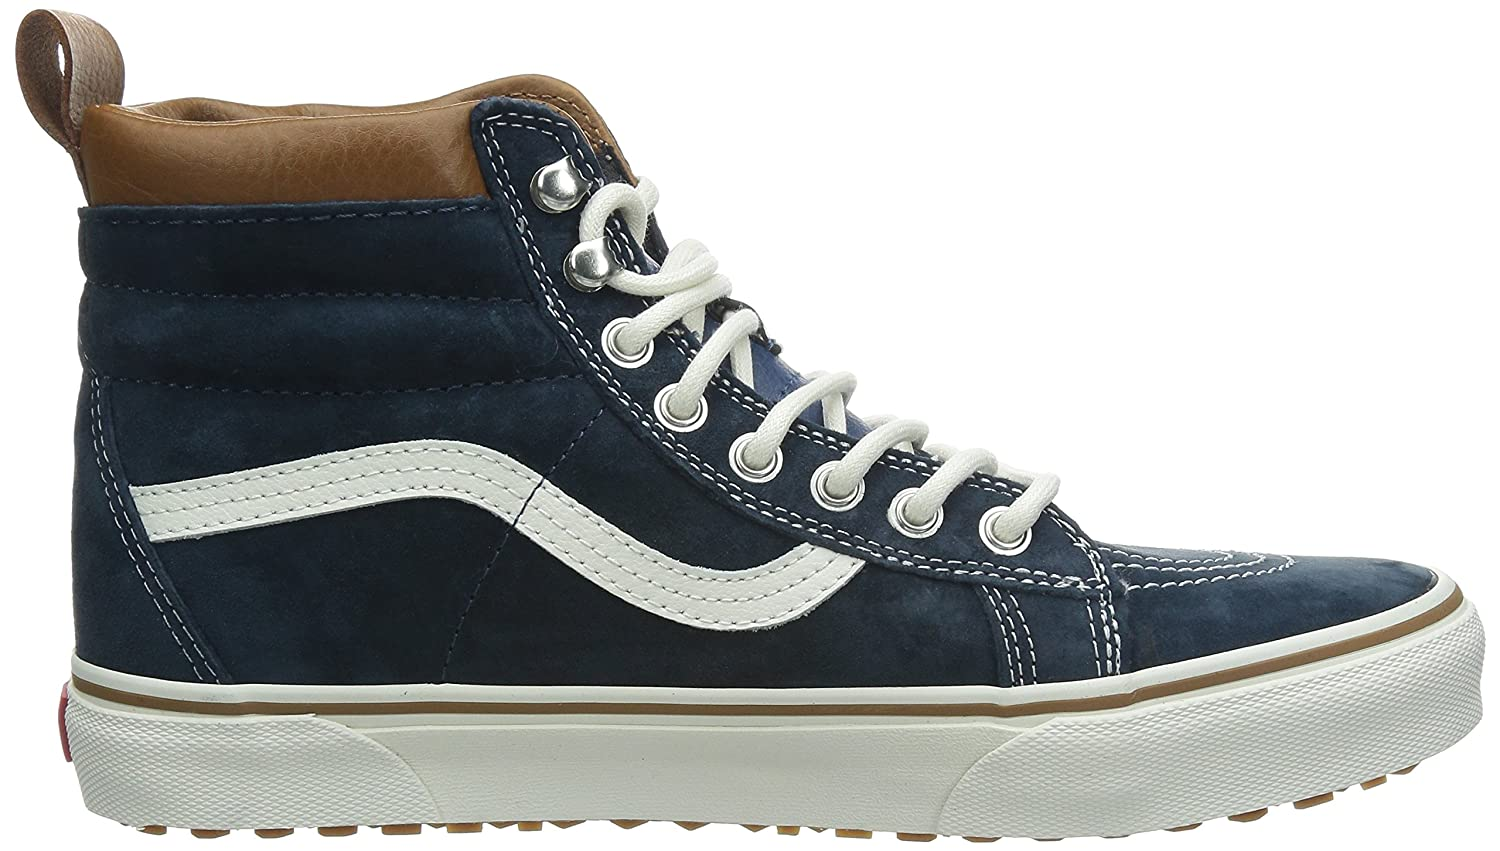 Vans Sk8-Hi Unisex Casual High-Top Skate Shoes, Comfortable and Durable in Signature Waffle Rubber Sole B00HJBUIRS 8.5 M US Women / 7 M US Men|(Mte) Dress Blues